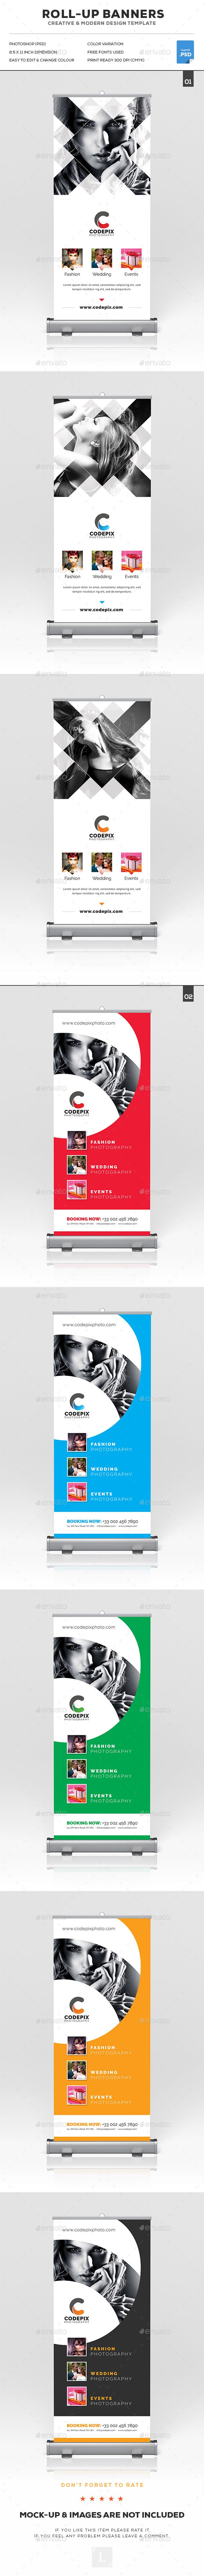 Photography Roll-Up Banner Templates PSD Bundle. Download here: https://graphicriver.net/item/photography-rollup-banner-bundle/17283417?ref=ksioks